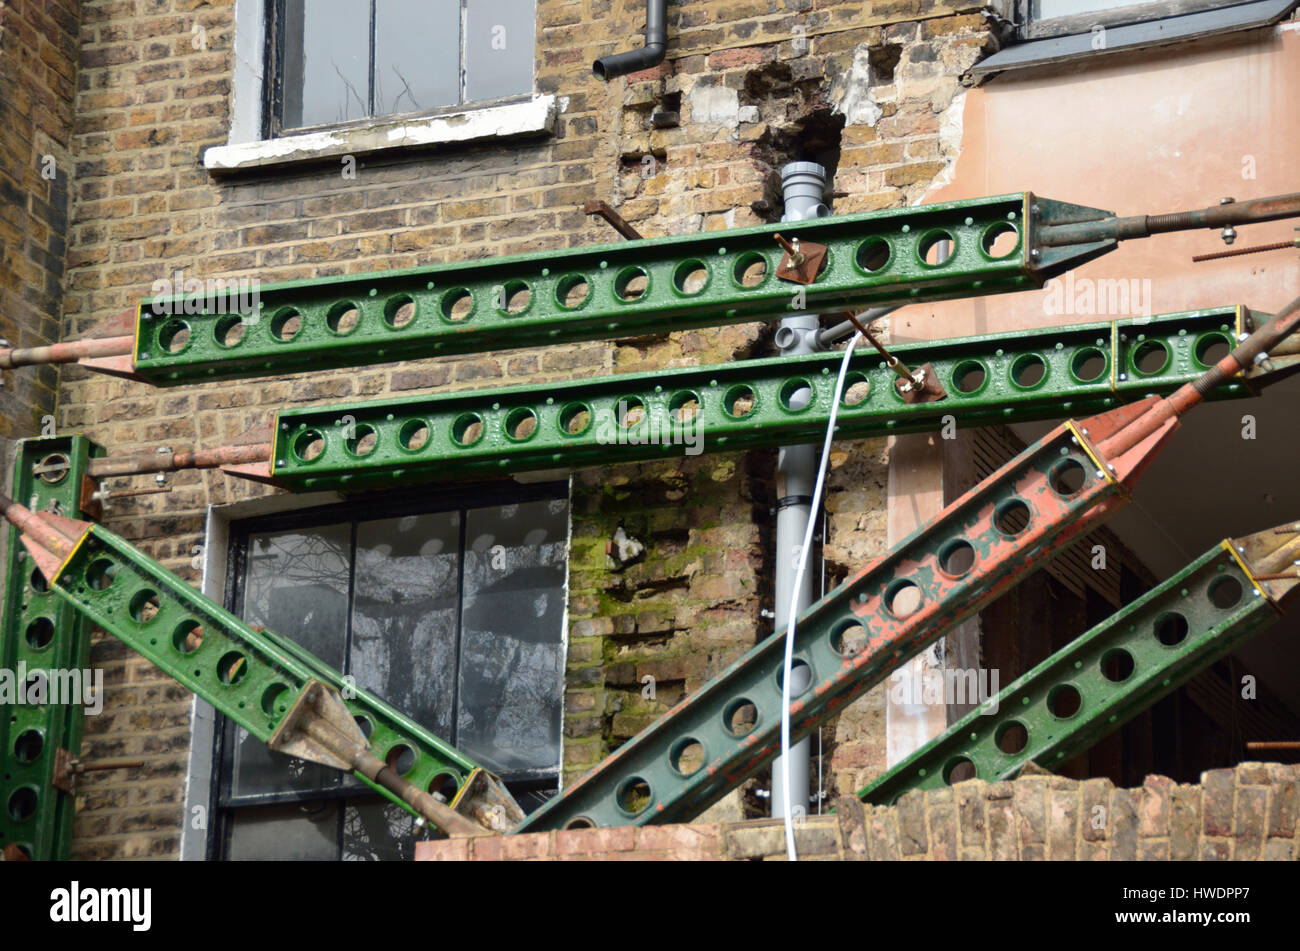 Iron girders supporting an unsafe residential building. Stock Photo